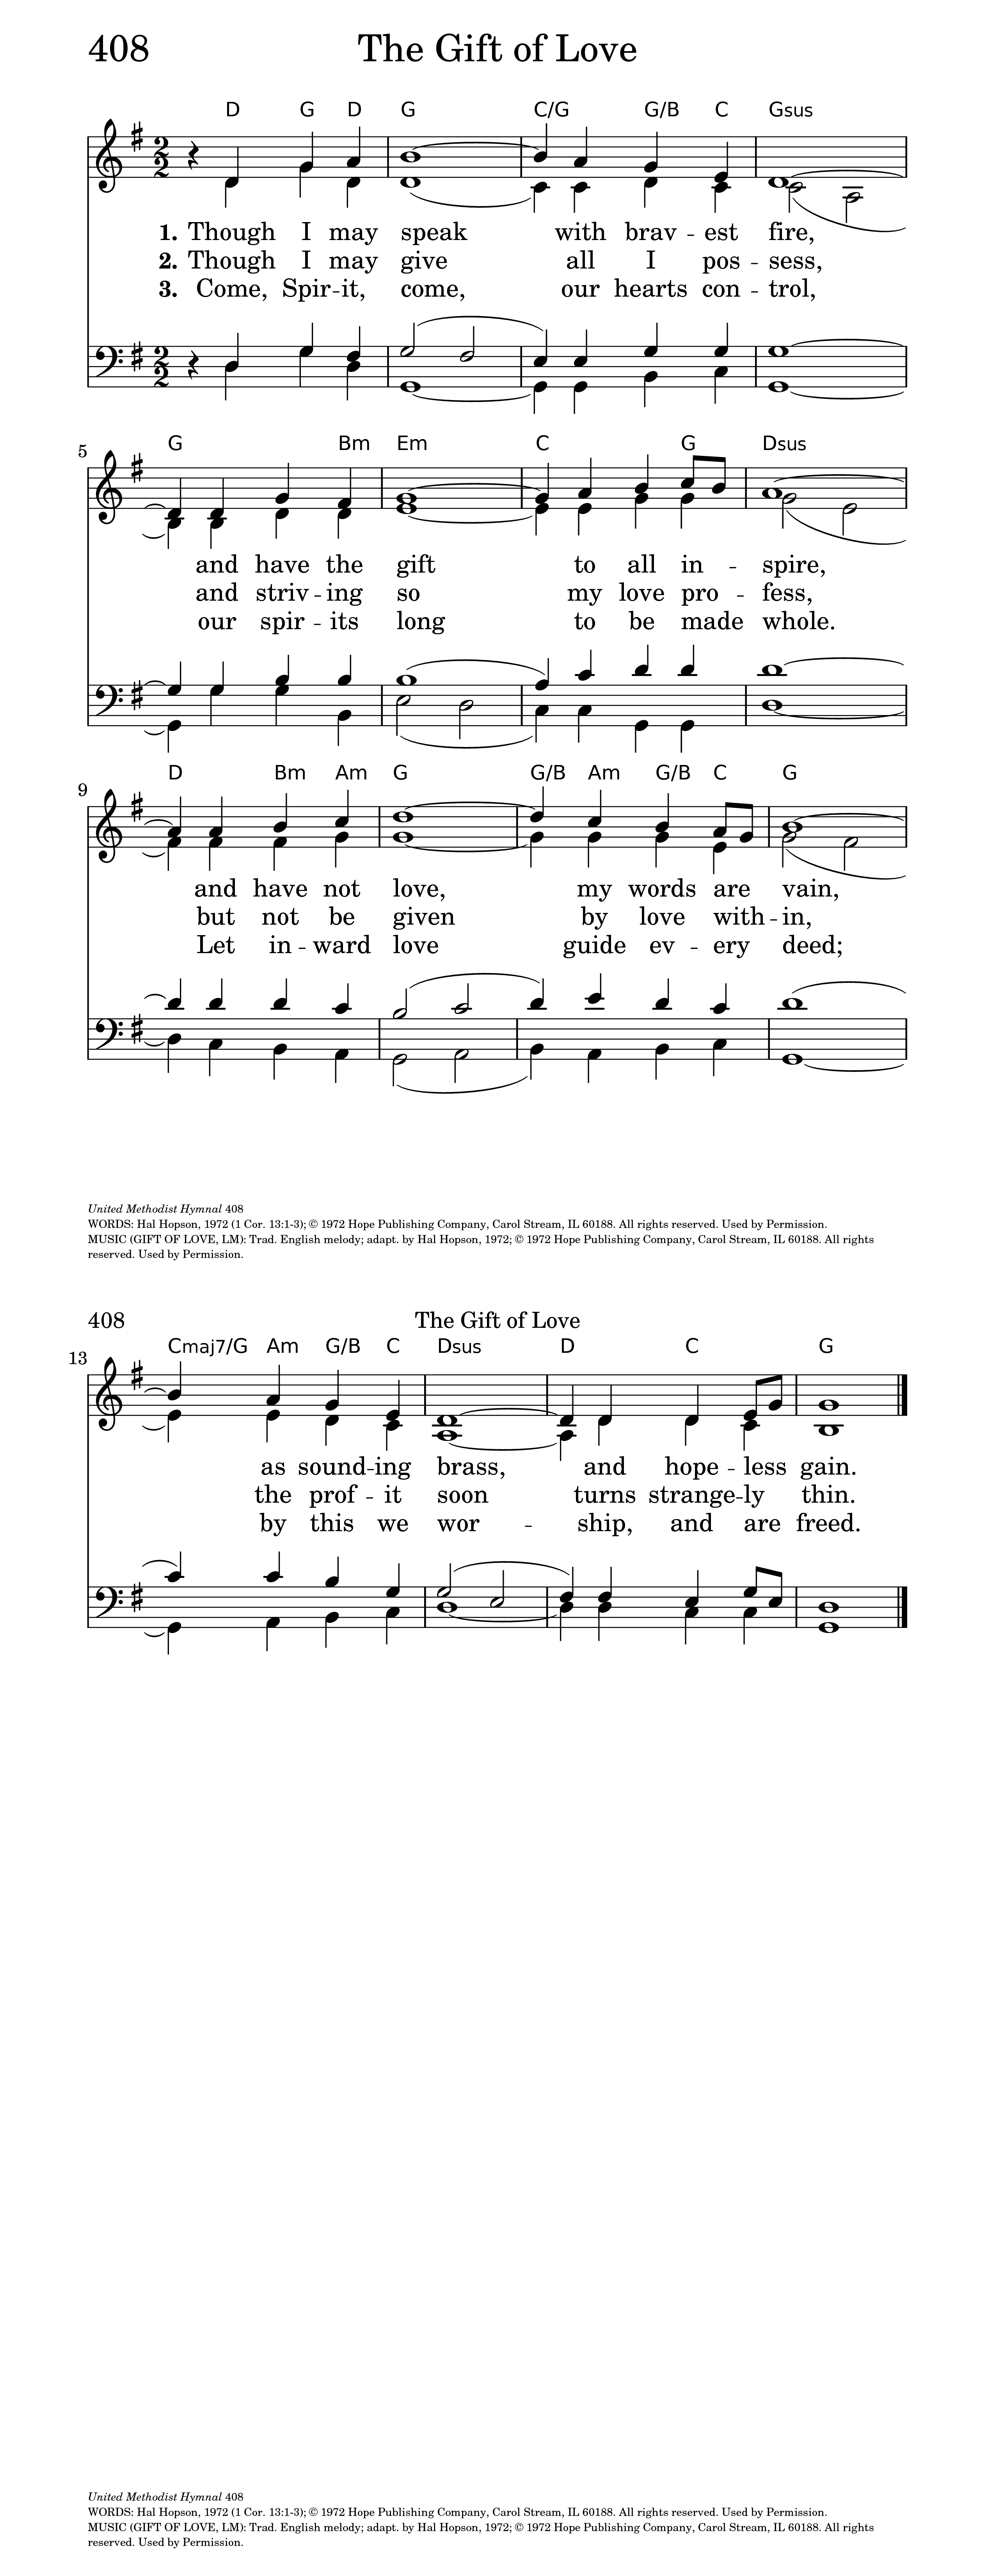 The gift of love hymnary general settings hexwebz Image collections